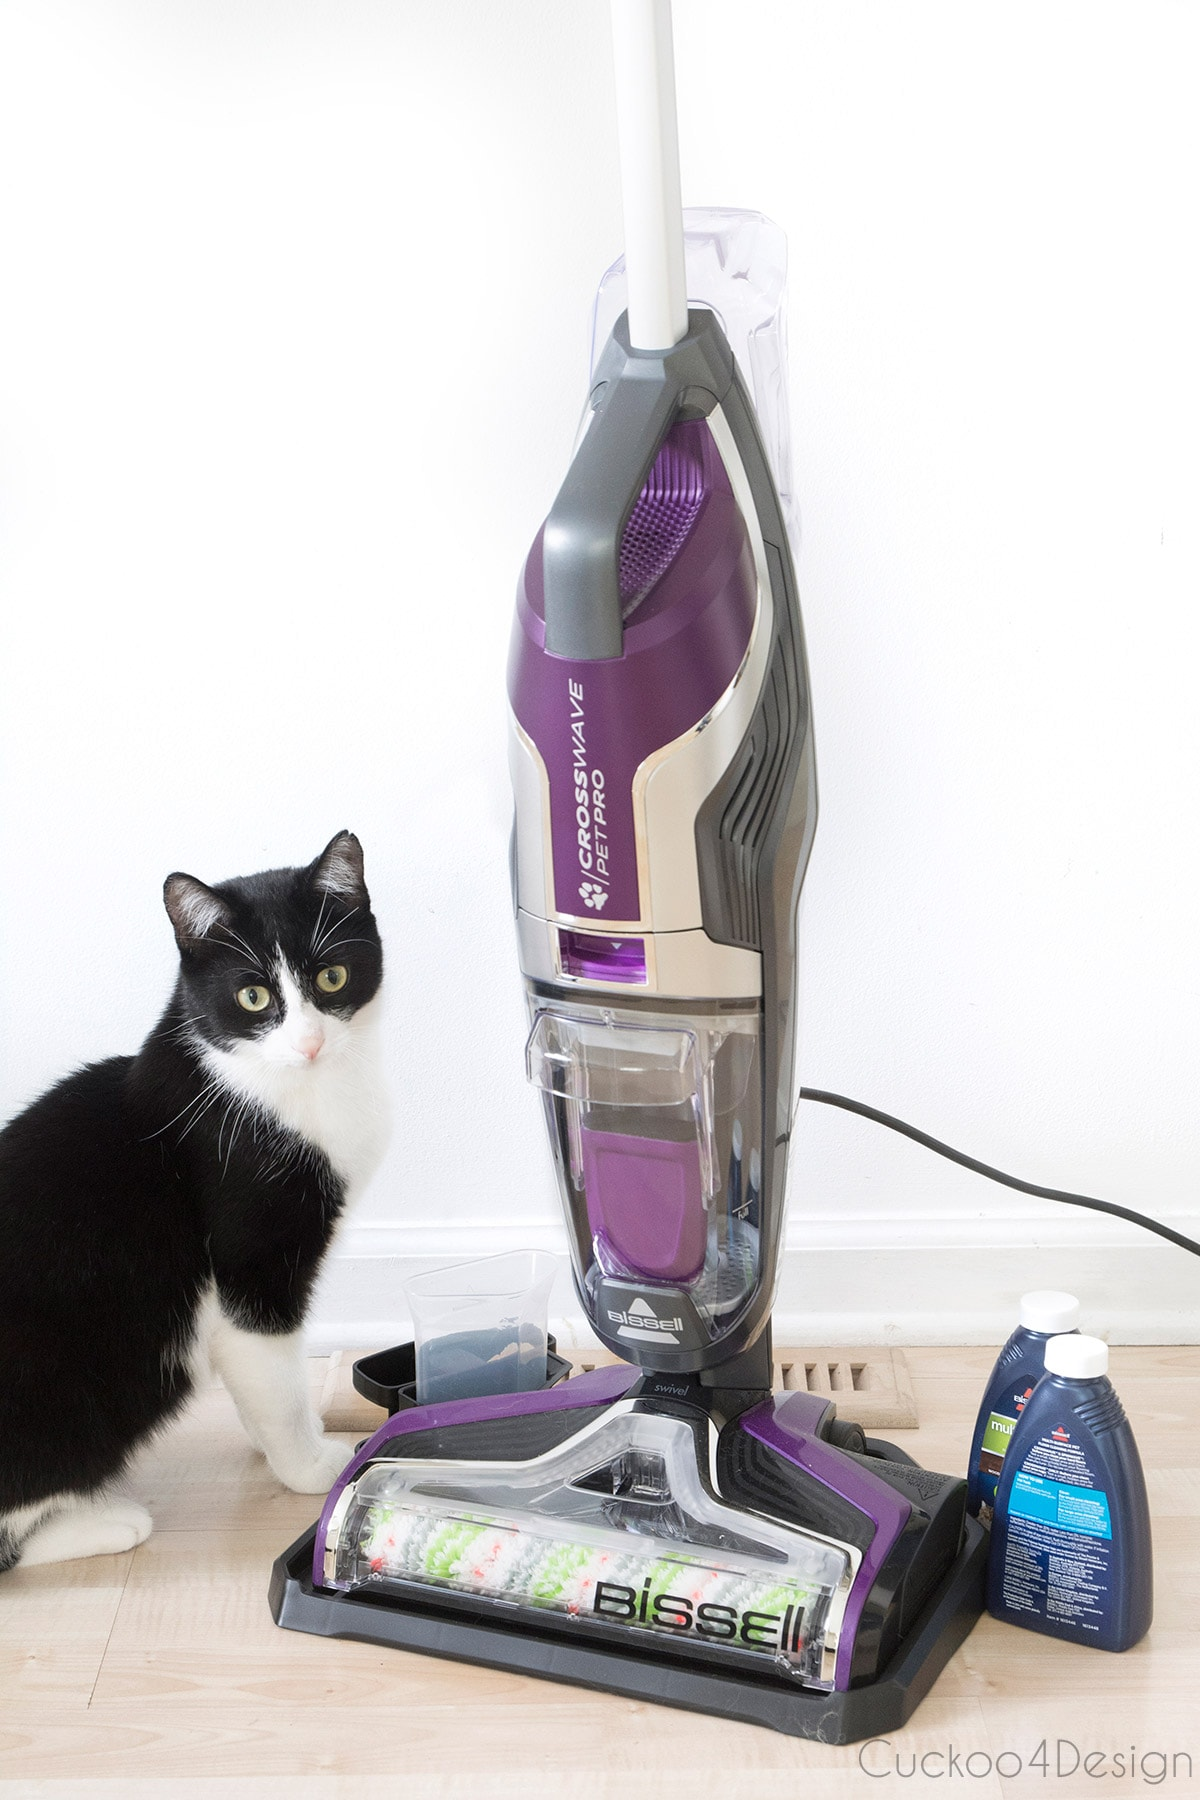 BISSELL CrossWave Pet Pro review